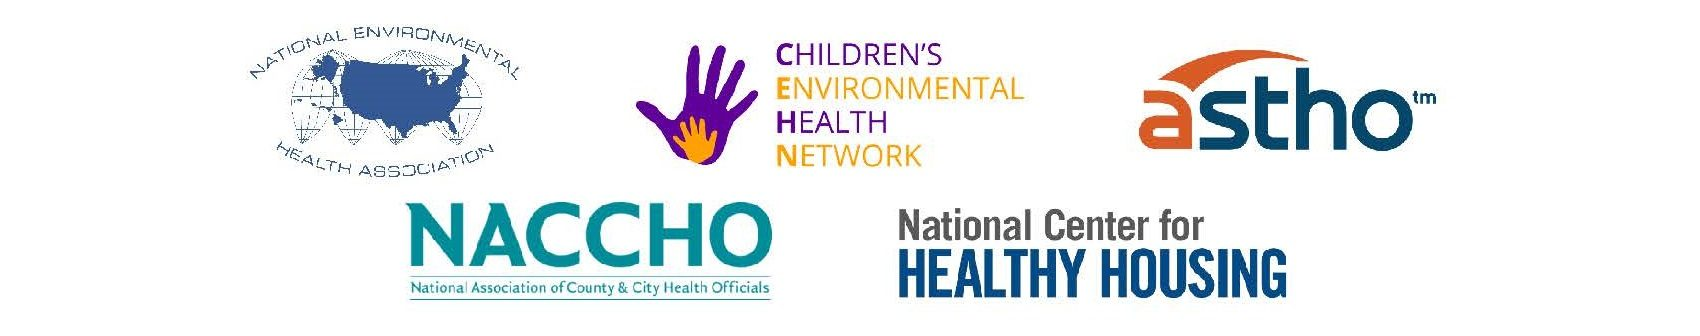 The Agency for Toxic Substances and Disease Registry Supports Launch of Environmental Health COVID-19 Early Care and Education Collaborative to Support Children's Health